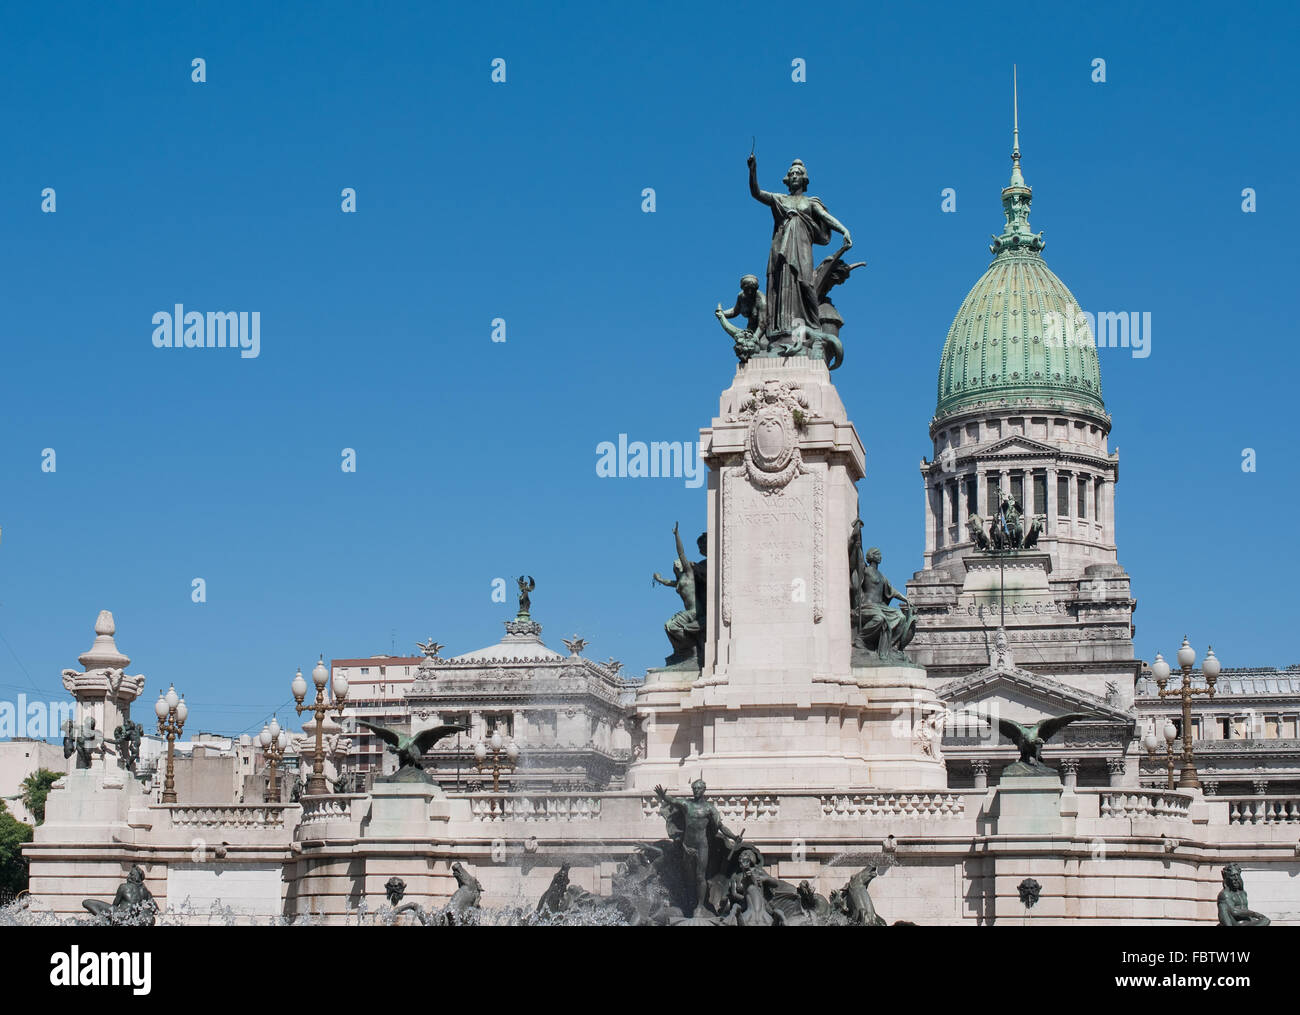 National Congress building, Buenos Aires, Argentina - Stock Image